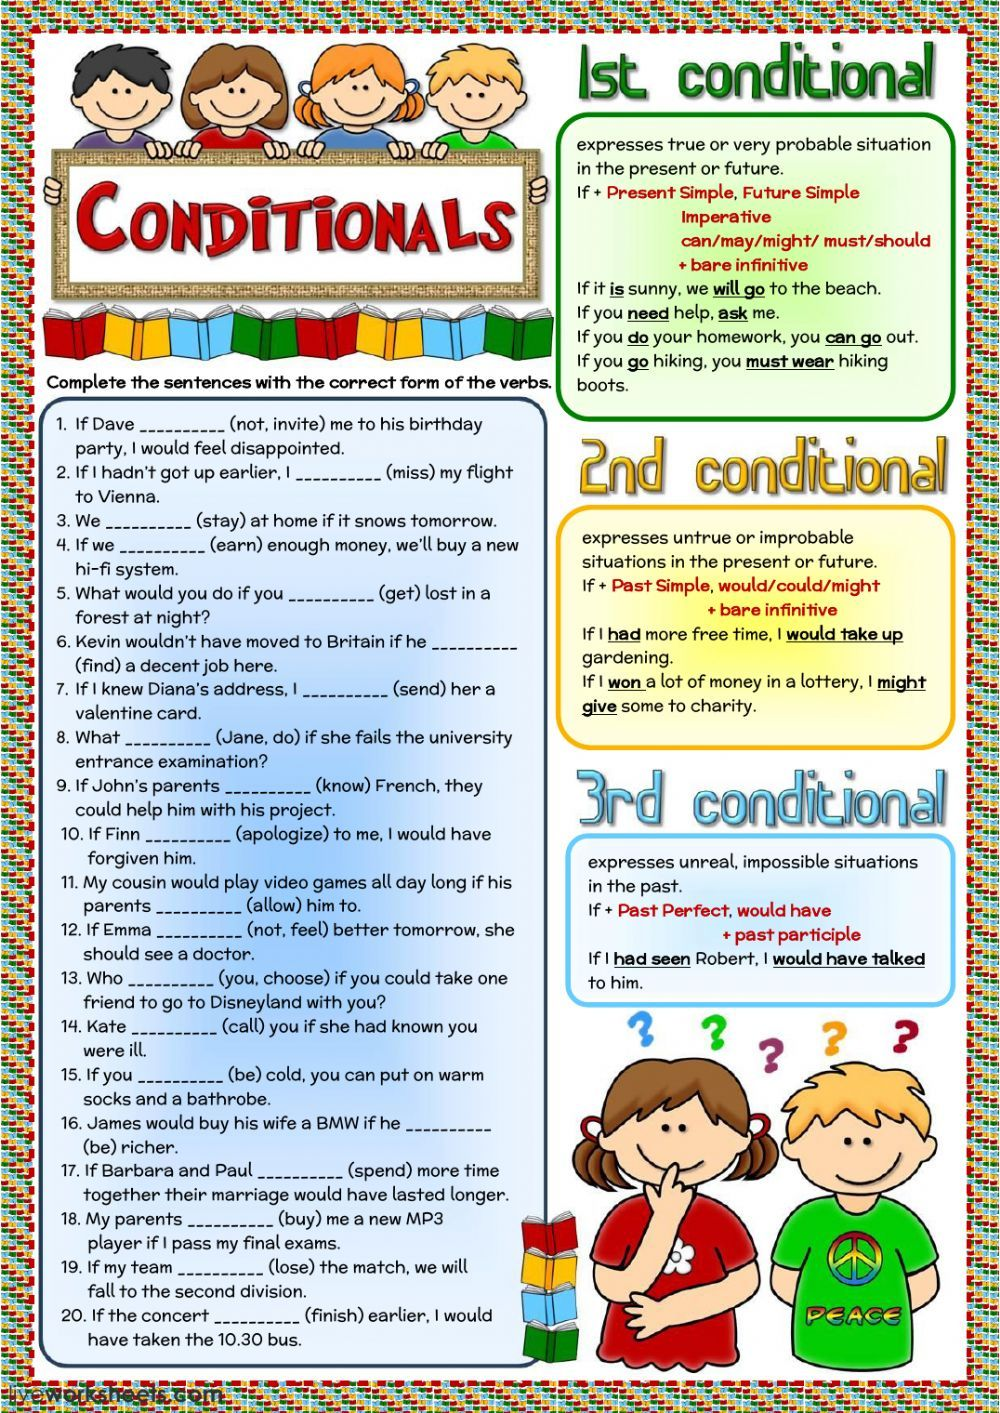 Conditional Sentences Interactive And Downloadable Worksheet You Can Do The Exercises Online Or Downl English Grammar Learn English English Grammar Worksheets [ 1413 x 1000 Pixel ]